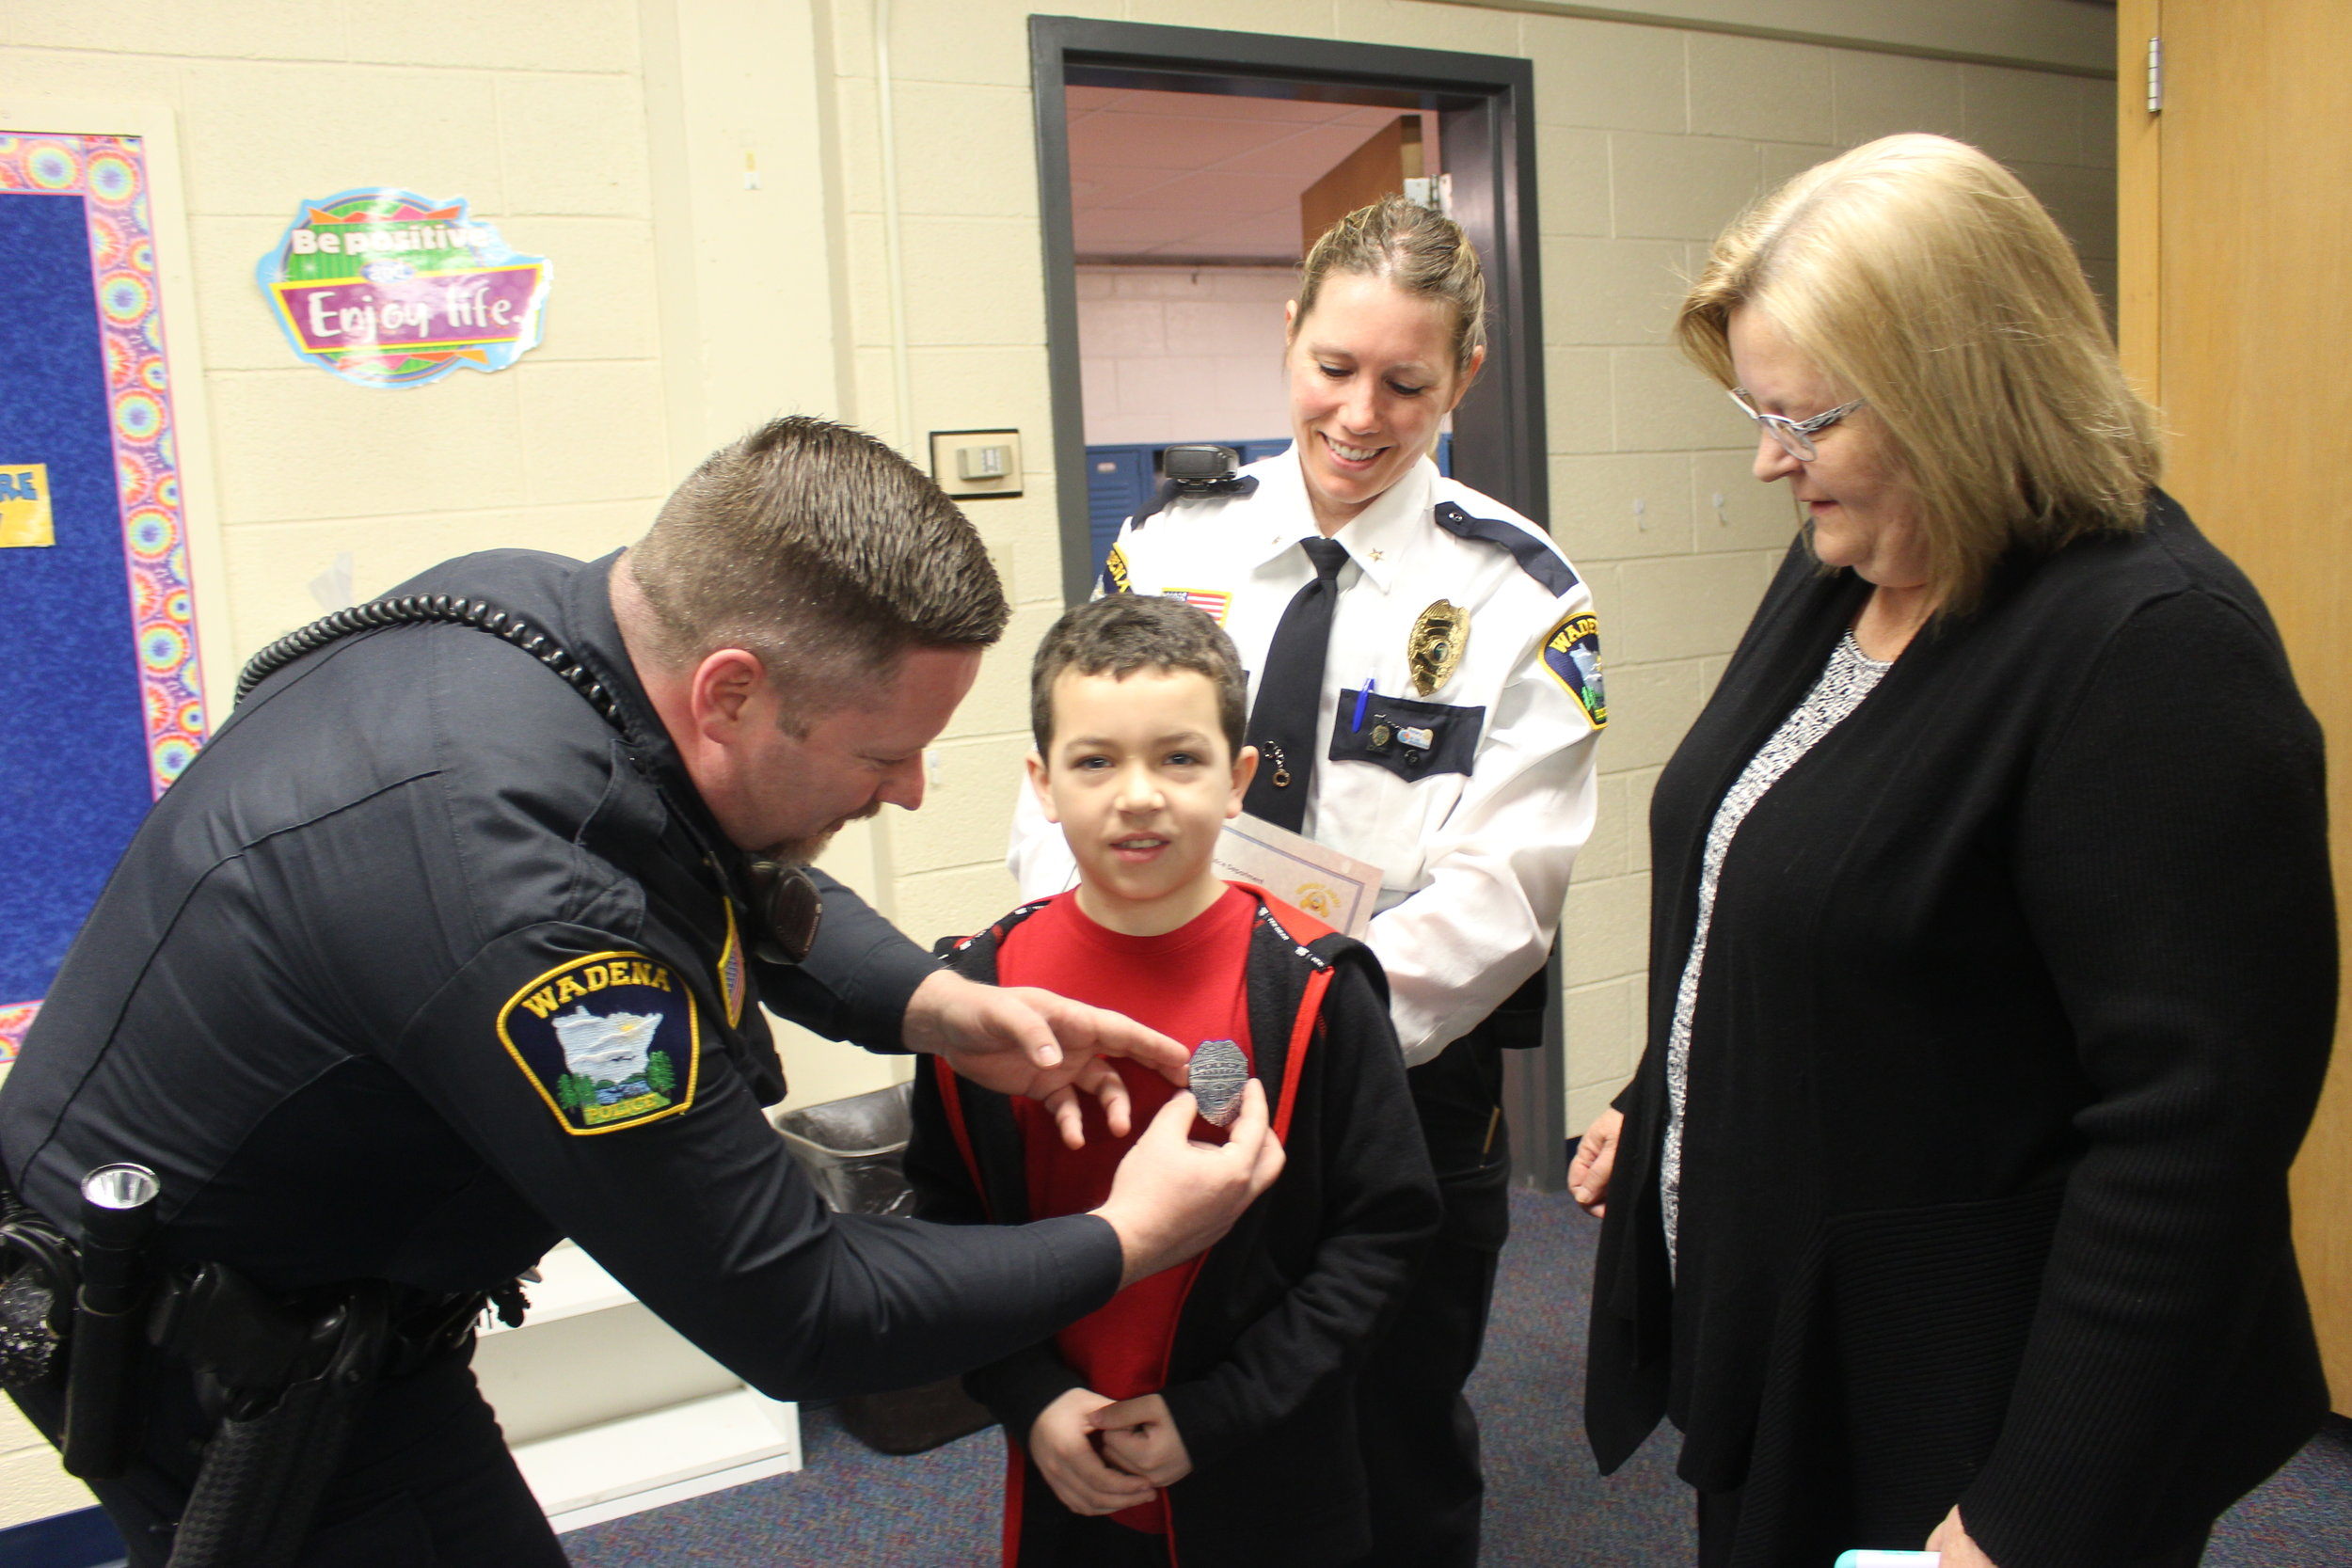 """Officer Nick Grabe pins on a """"deputy badge"""" for Brayden Canning's heroic actions in saving his 91-year-old great-grandma's life. Looking on is Brayden's grandma, Pam Canning, right, and Wadena Police Chief Naomi Plautz. Photo by Dana Cantleberry, WDC Schools."""